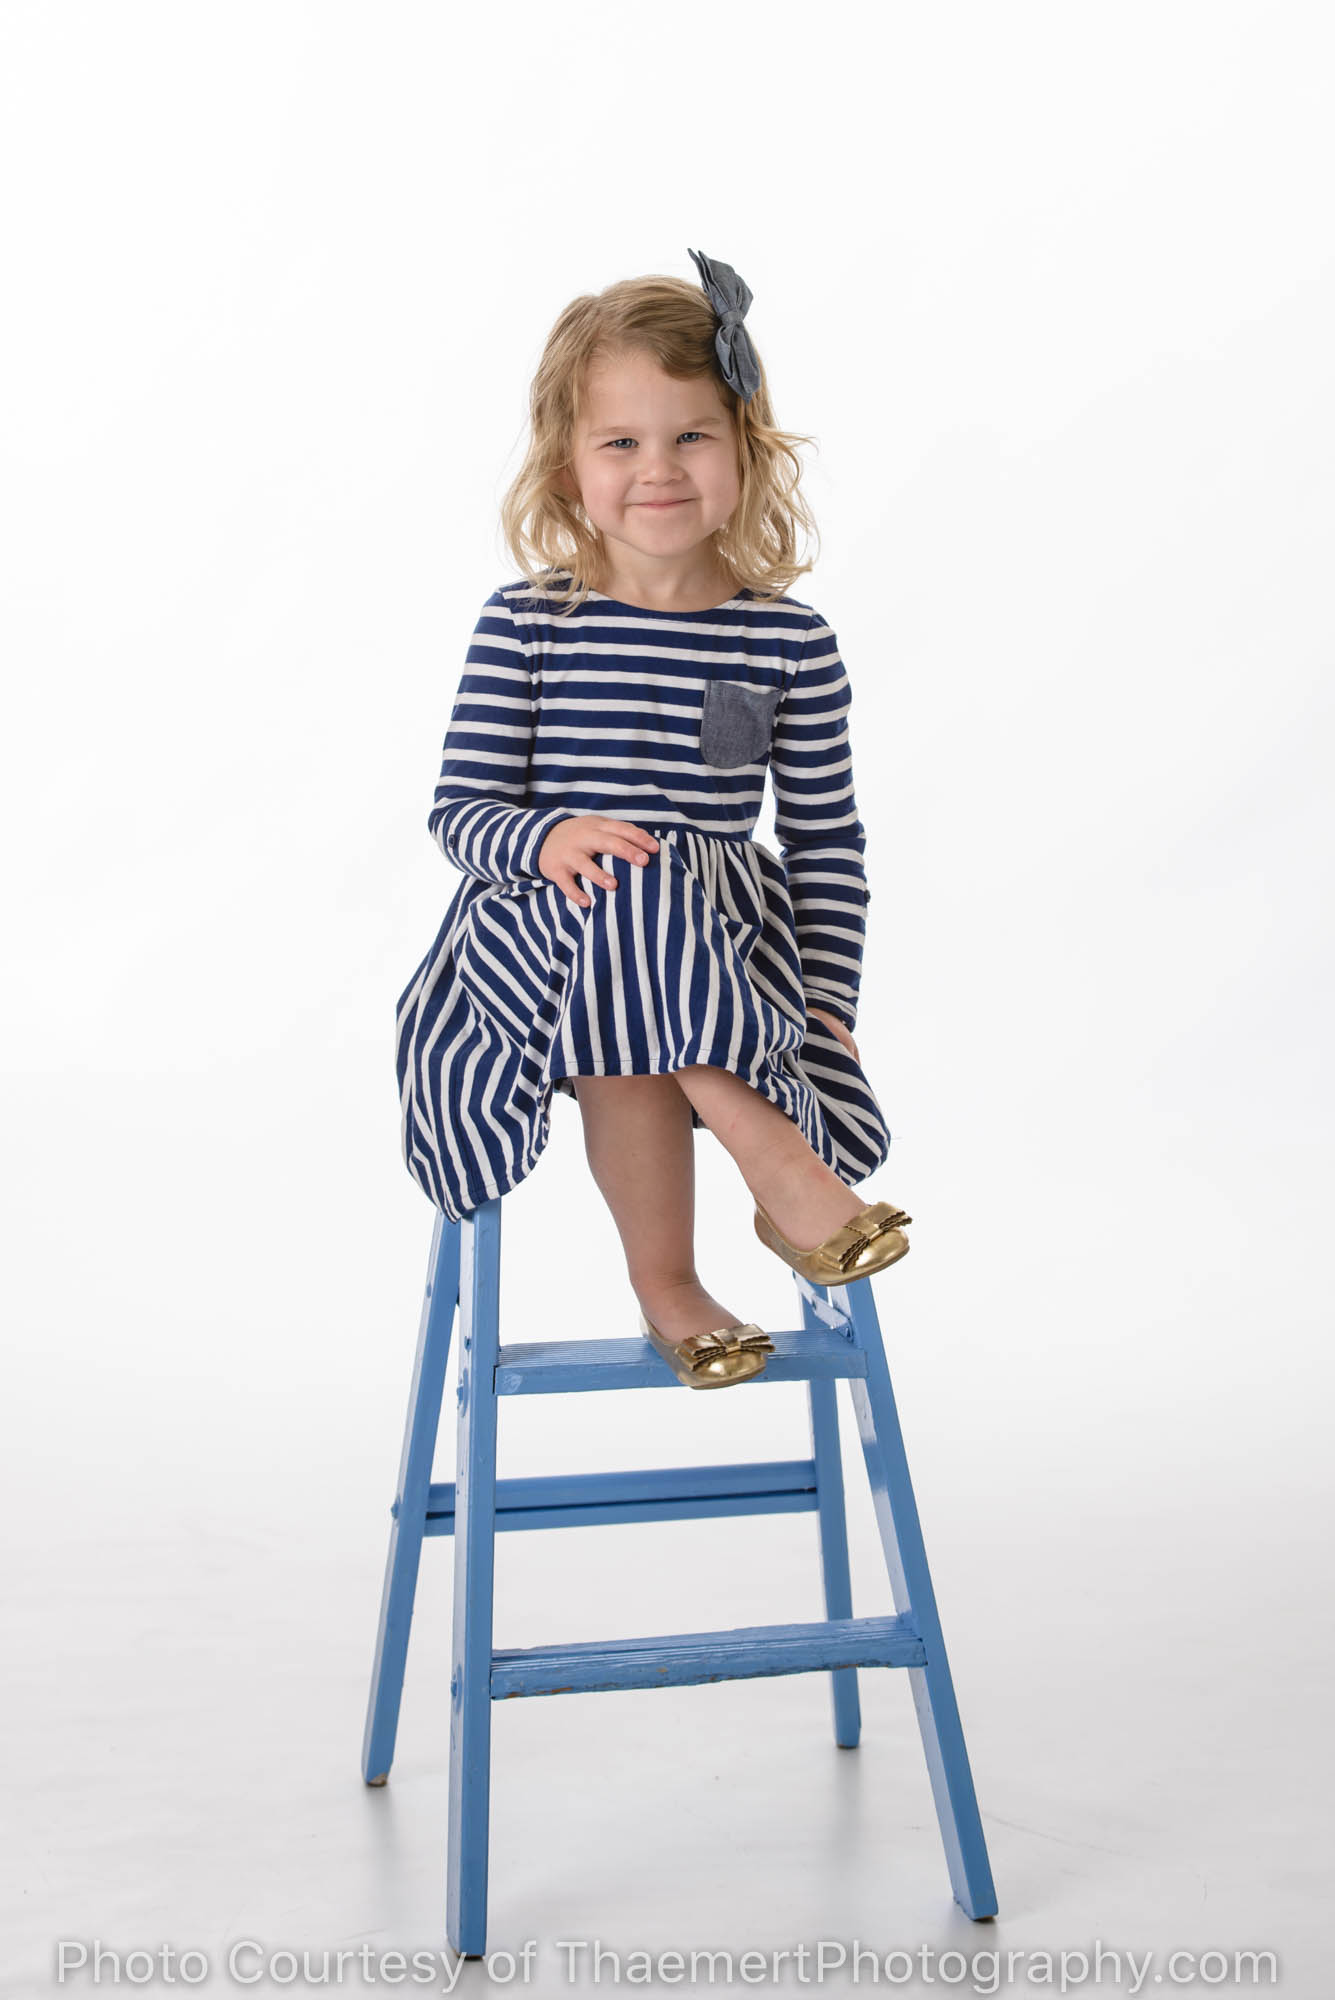 Toddler Birthday Photos of little girl on a blue stool in the Studio